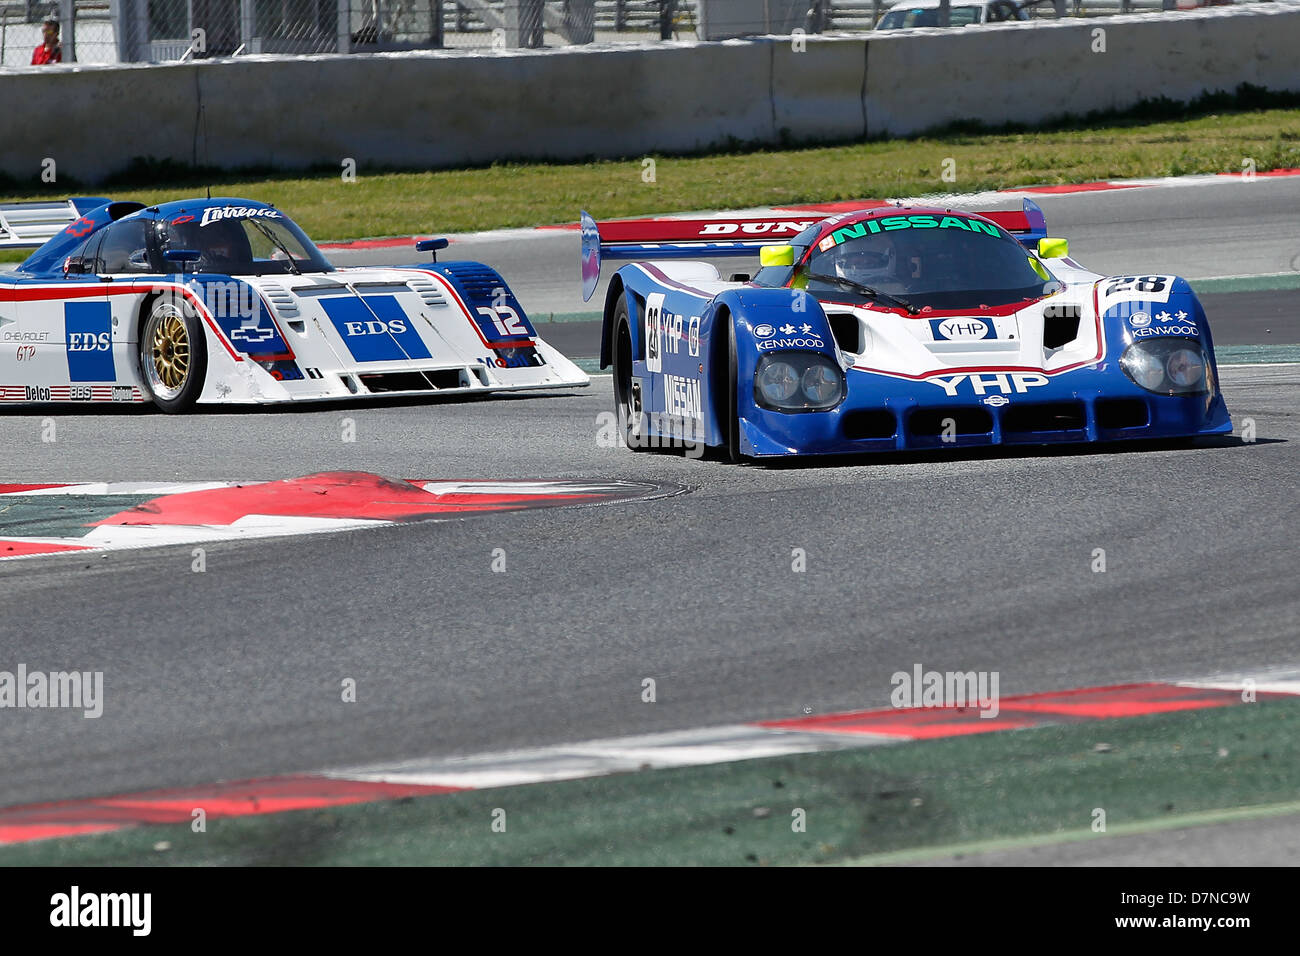 Group C race at Barcelona Catalonia Classic Revival, Montmelo circuit, April 2013, Kent Abrahamsson in Nissan R90 Stock Photo